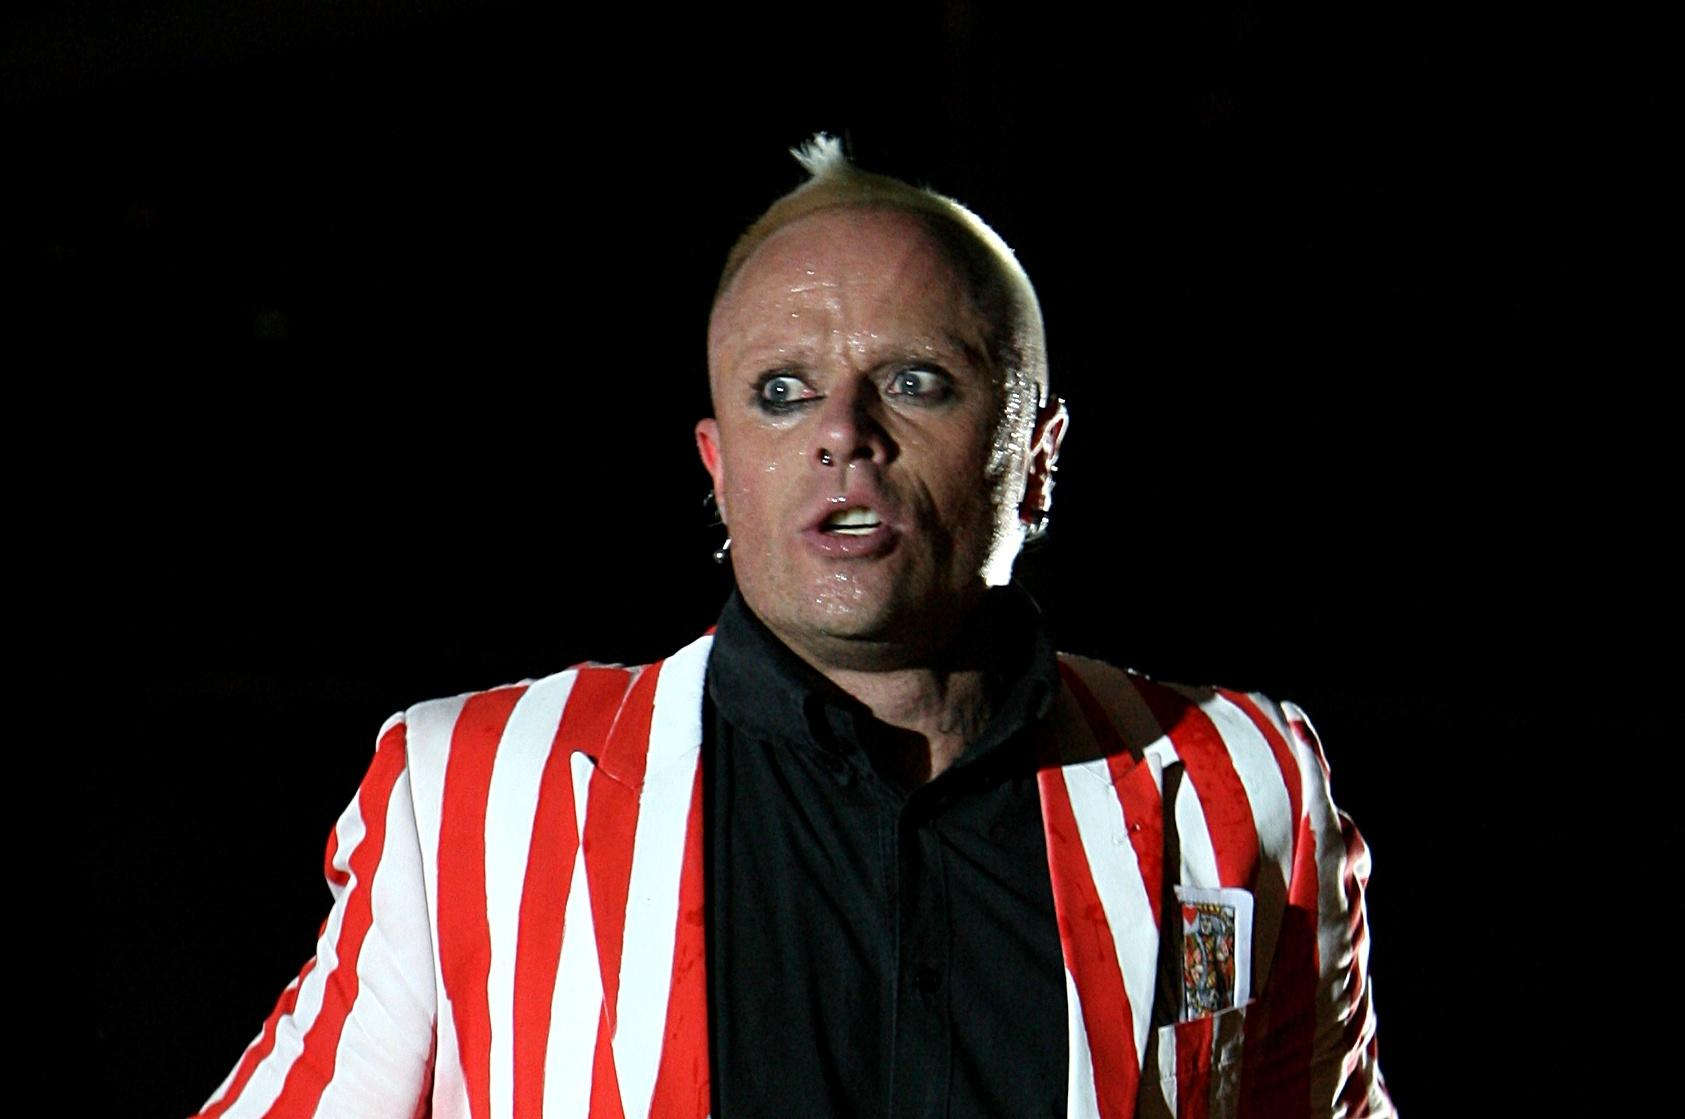 Prodigy lead singer Keith Flint performs during the Oxegen Festival 2008 at the Punchestown Racecourse, Naas, County Kildare, Ireland.   (Photo by Niall Carson - PA Images/PA Images via Getty Images)